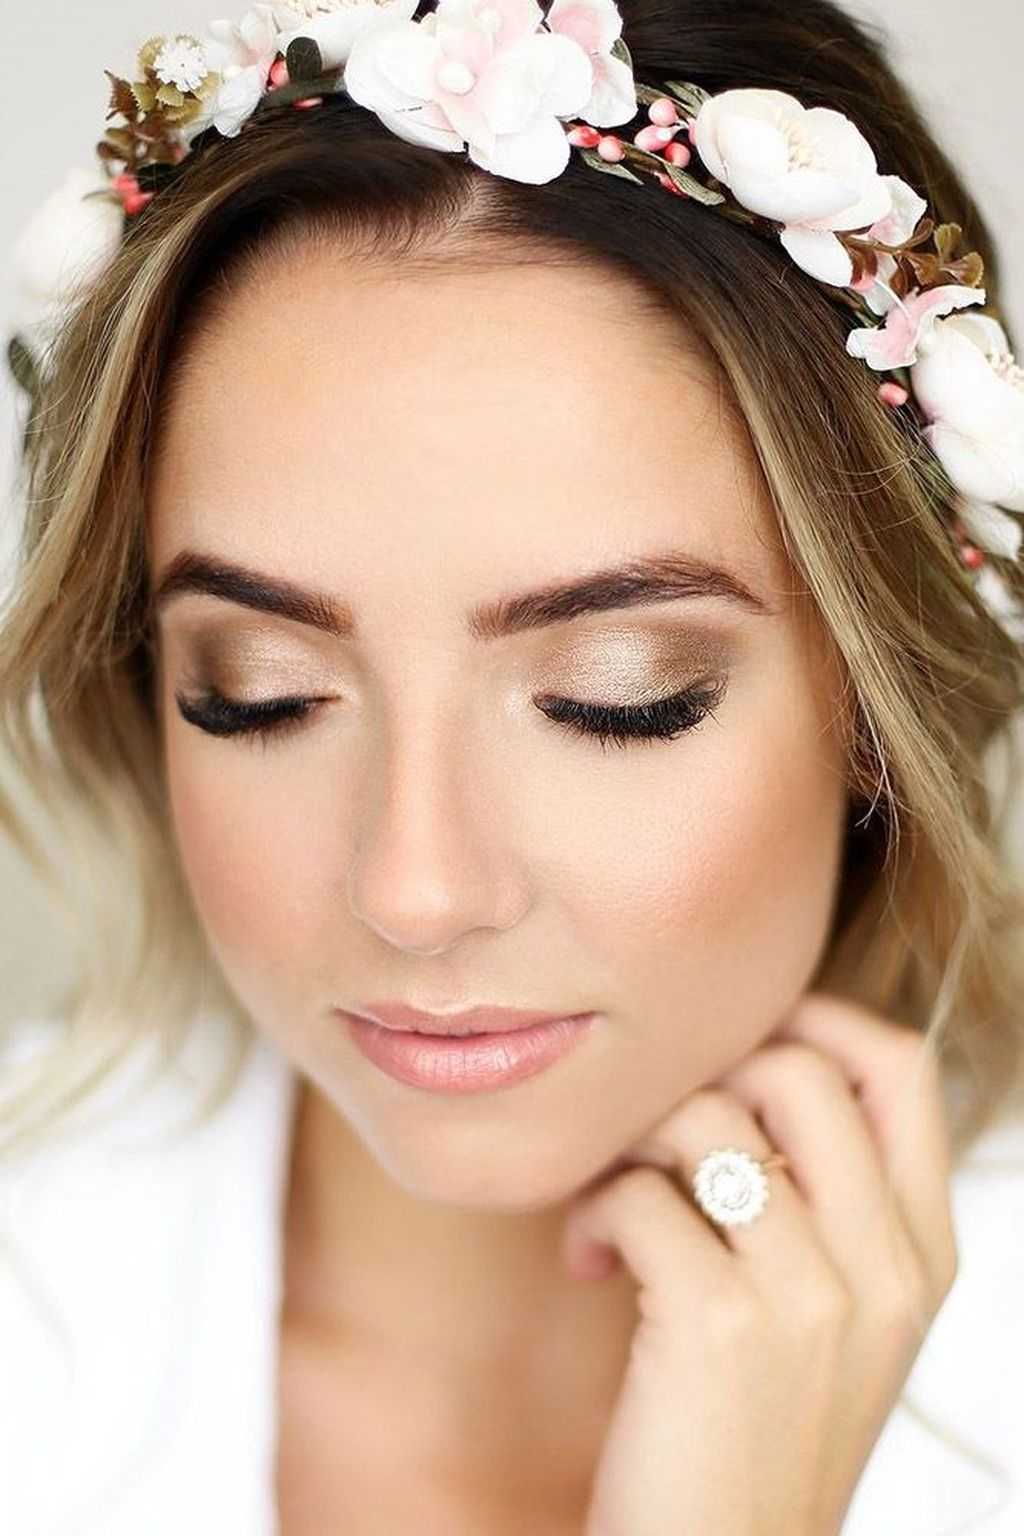 56 Natural Wedding Makeup Ideas To Makes You Look